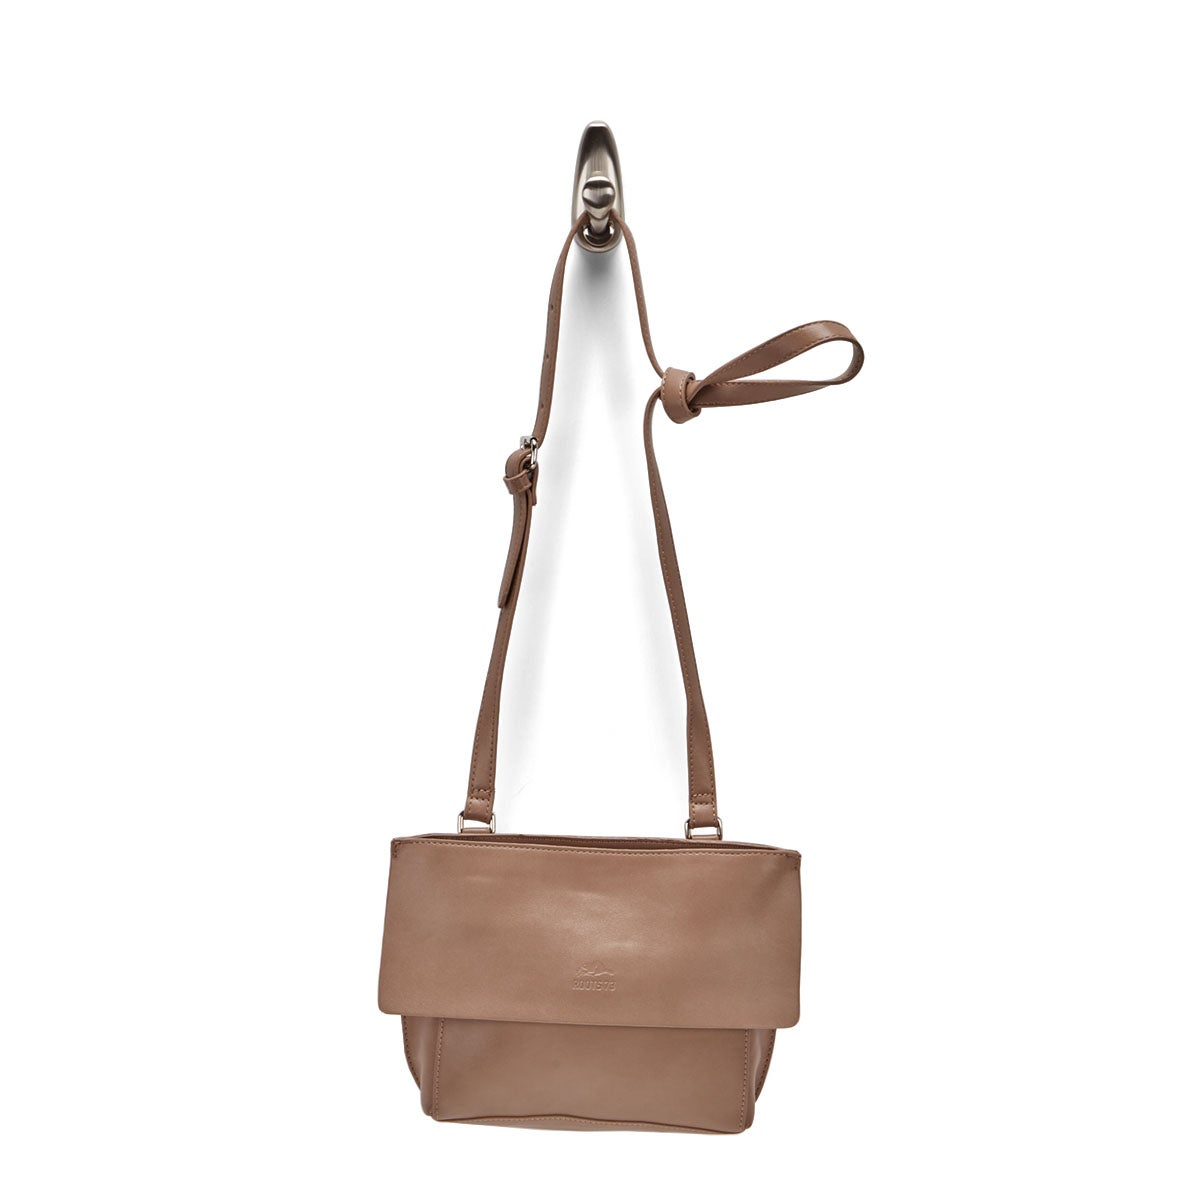 Lds Roots73 taupe flap crossbody bag